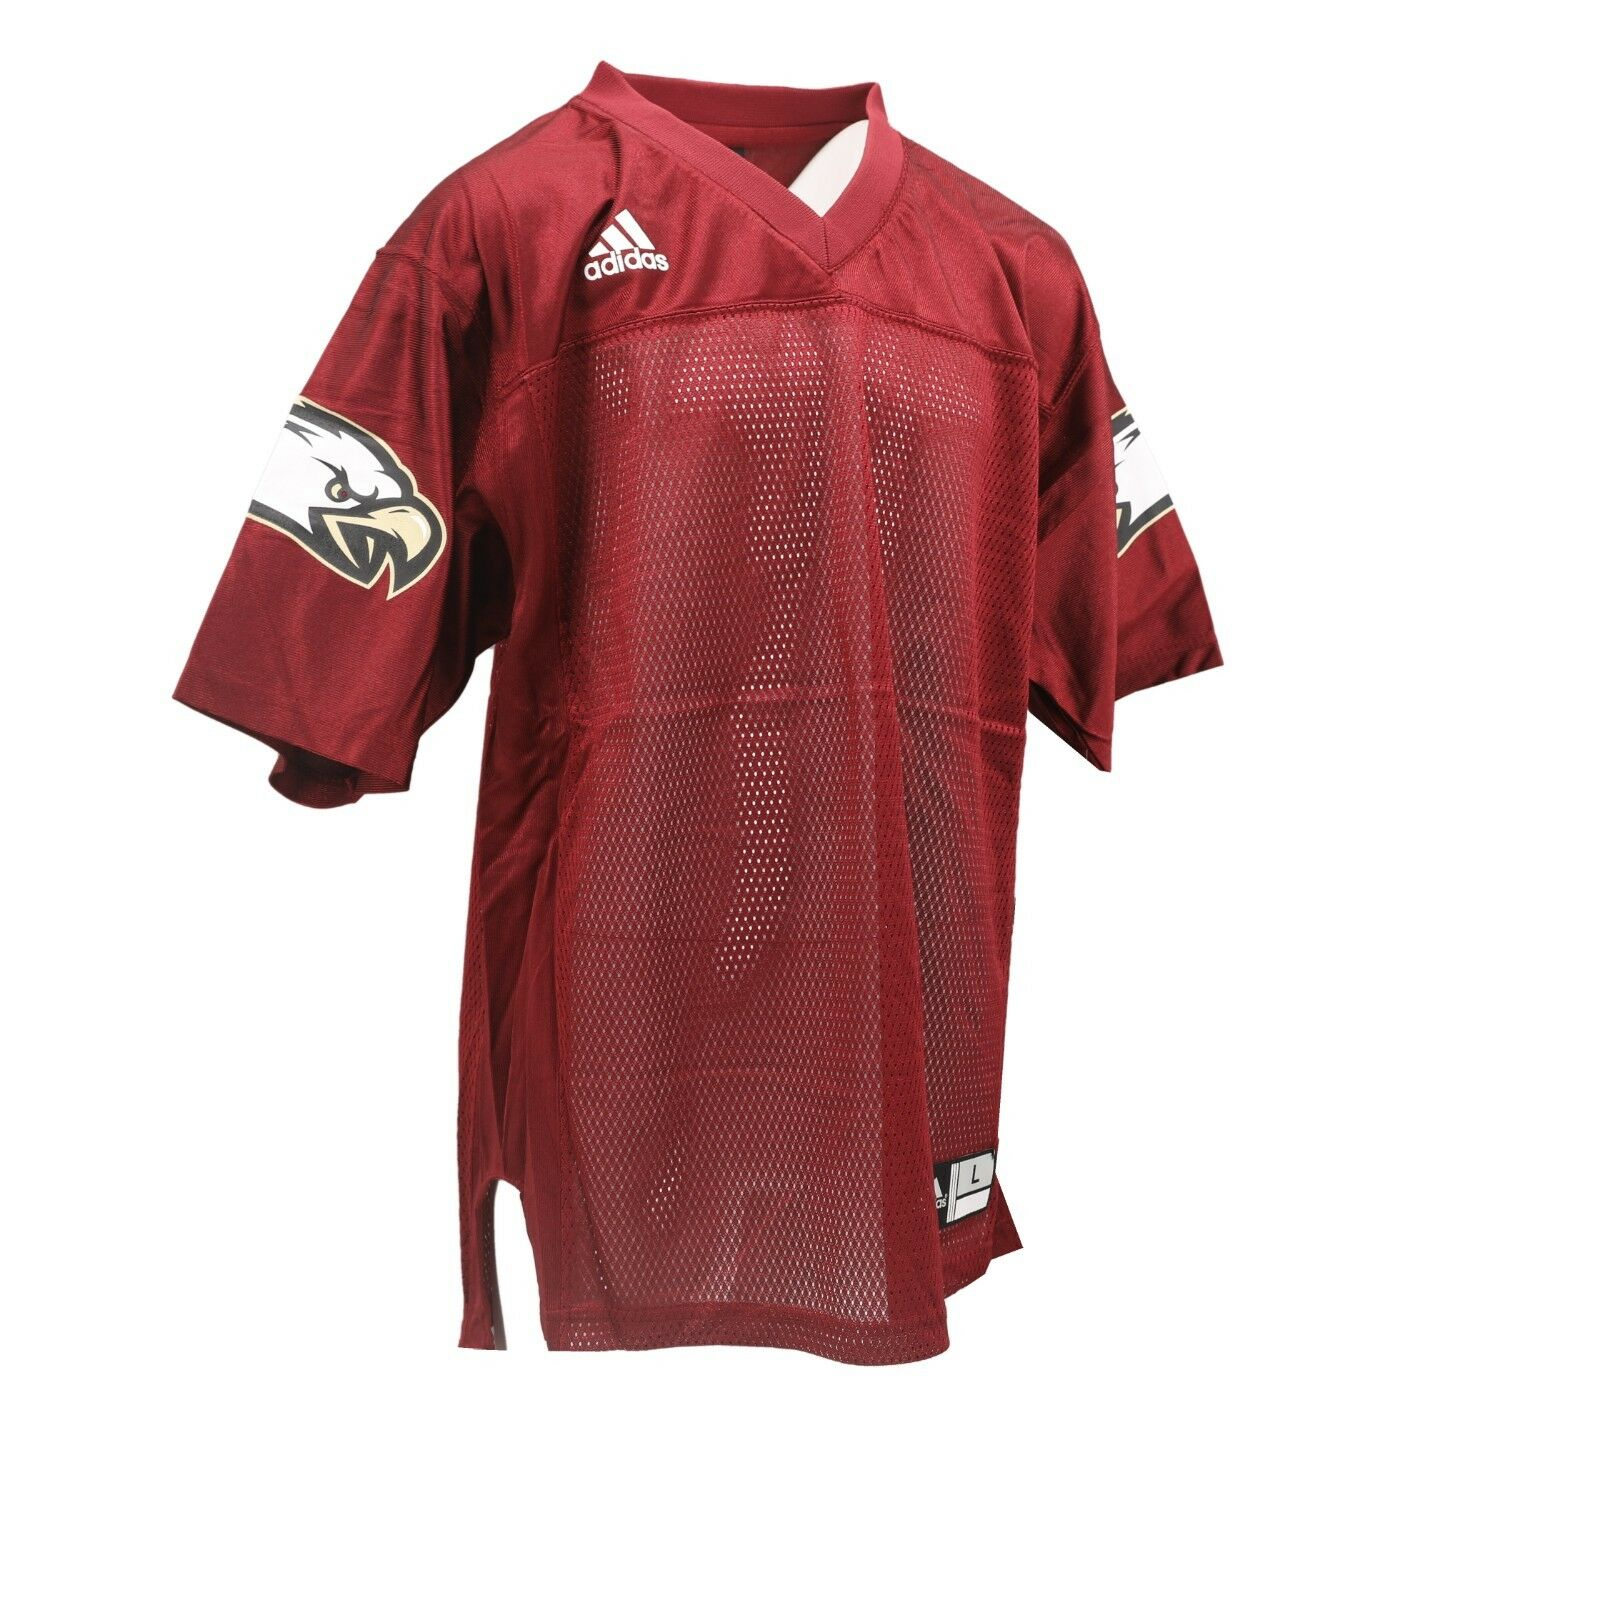 hot sales be459 b7a37 Details about Boston College Eagles Official NCAA Adidas Kids Youth Size  Football Jersey New